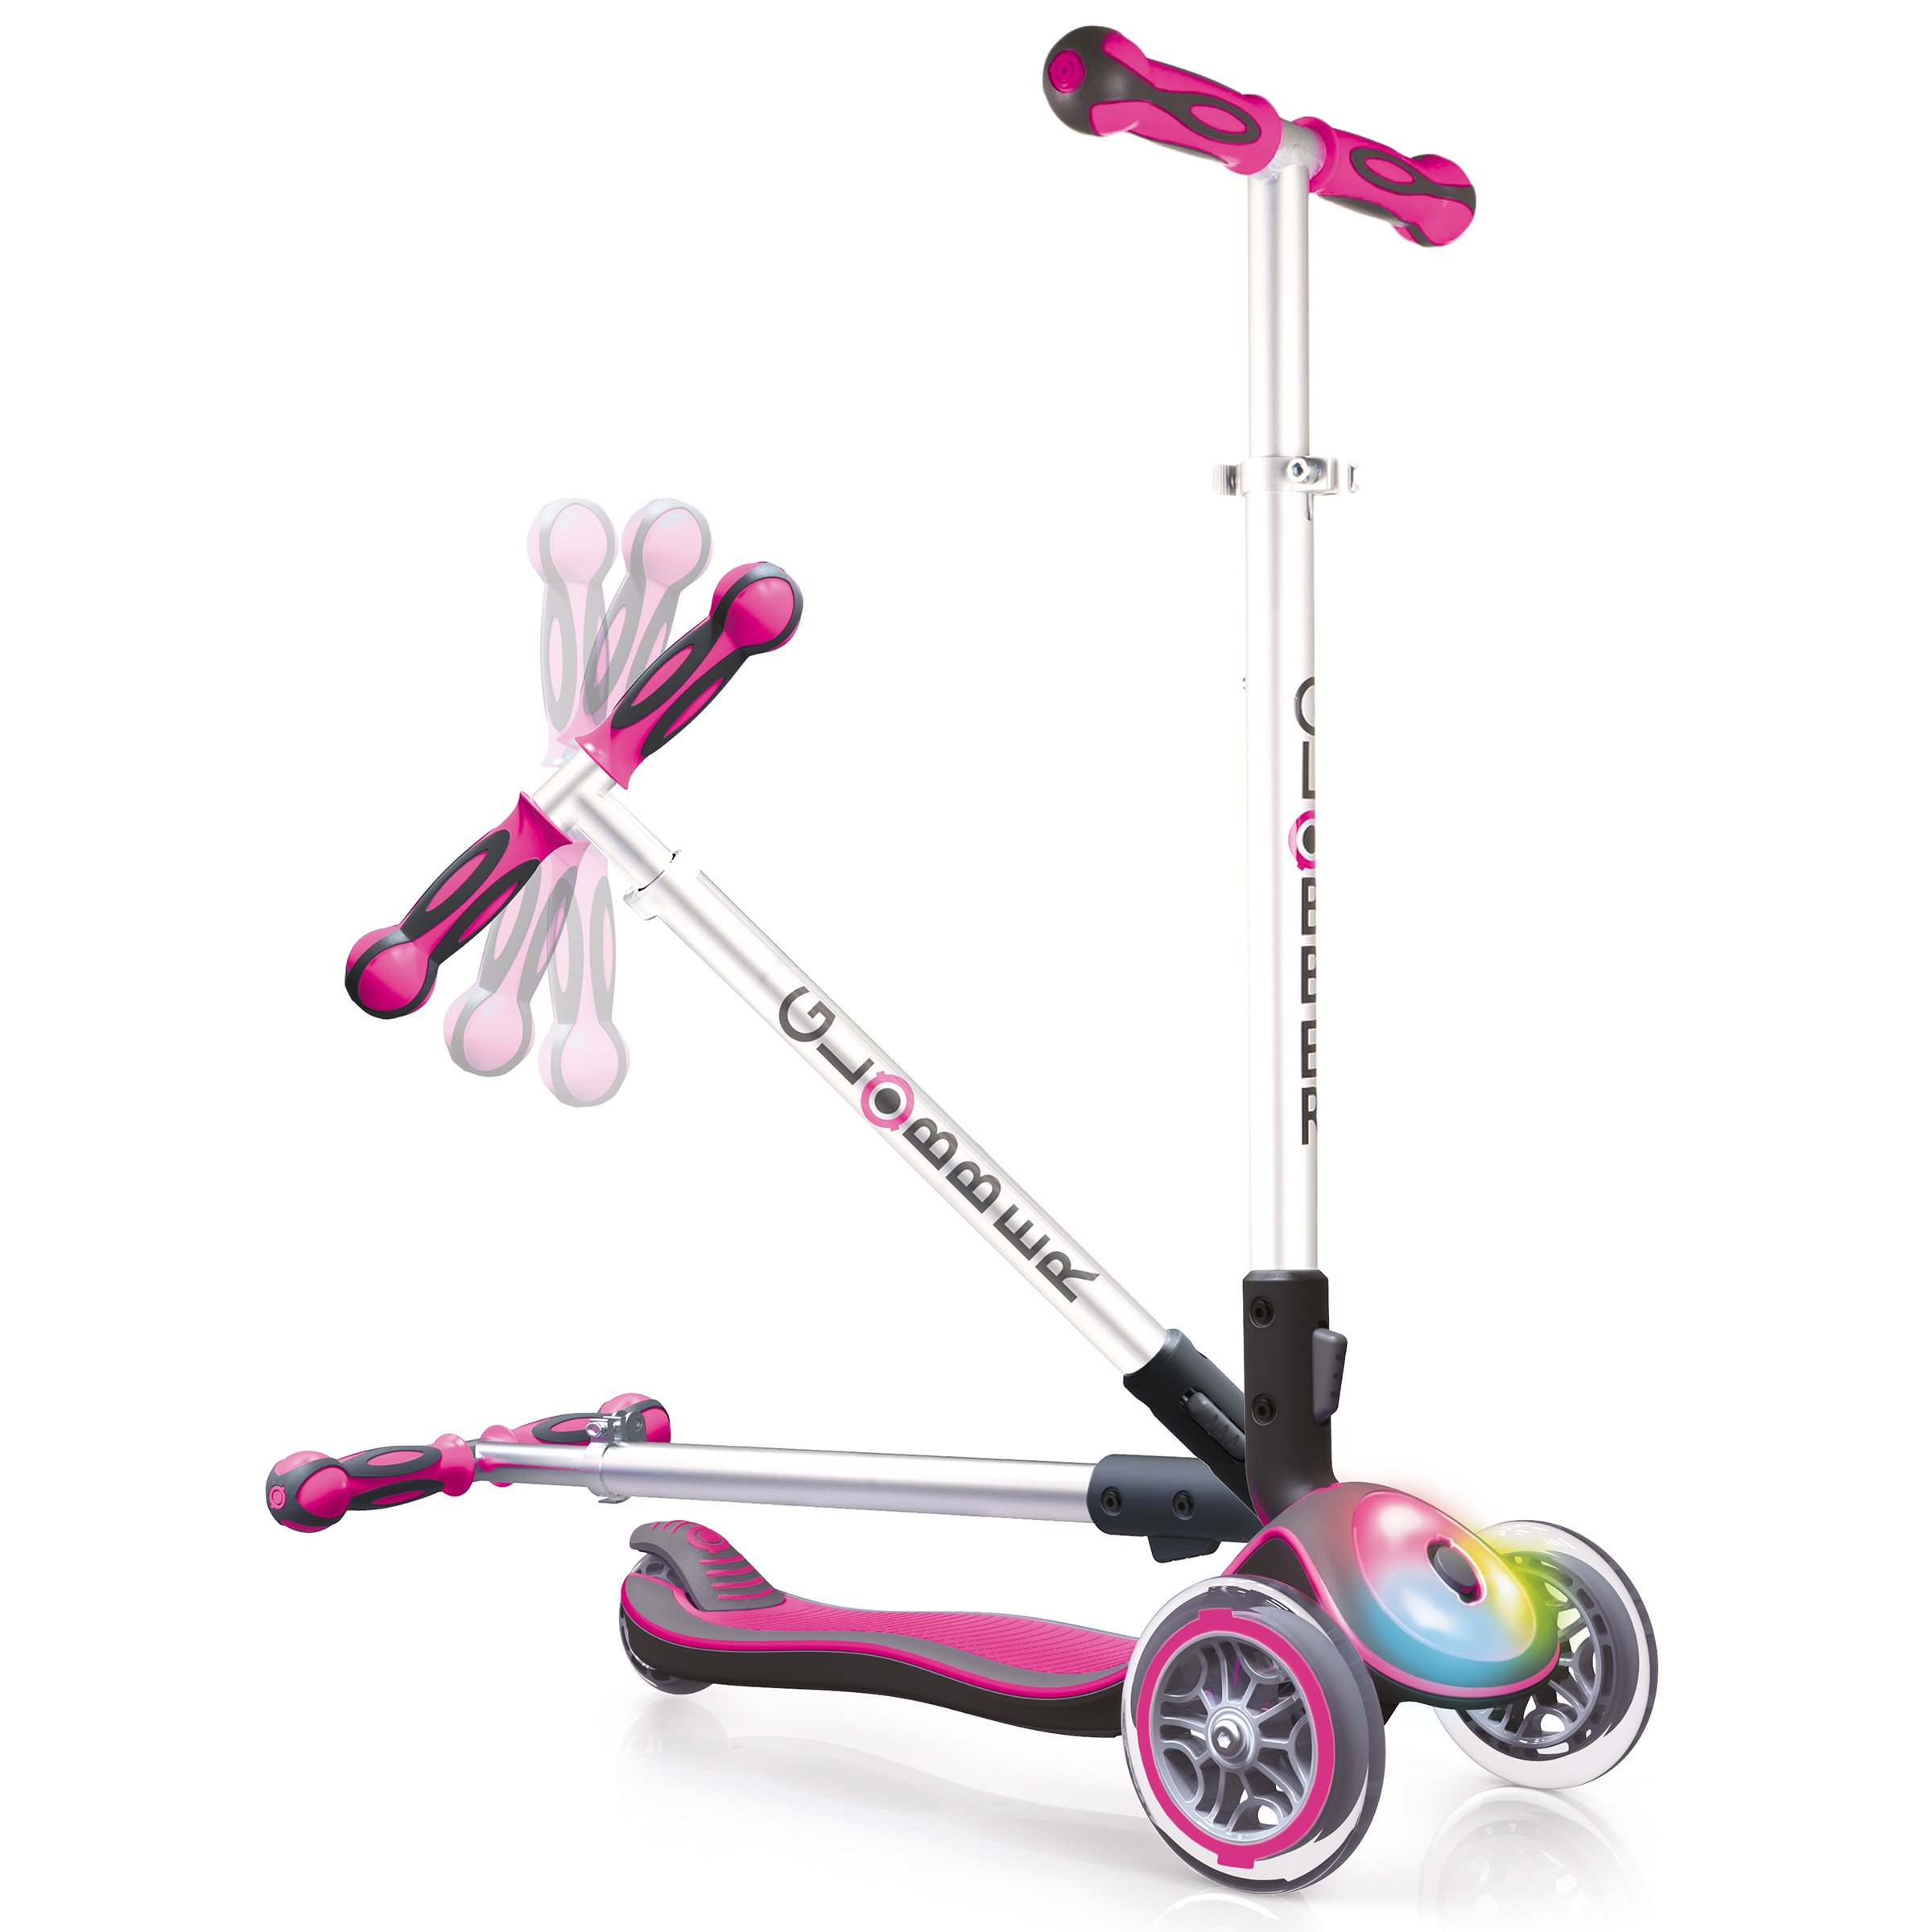 Globber 3 Wheel Folding Scooter with LED Lights (Pink)